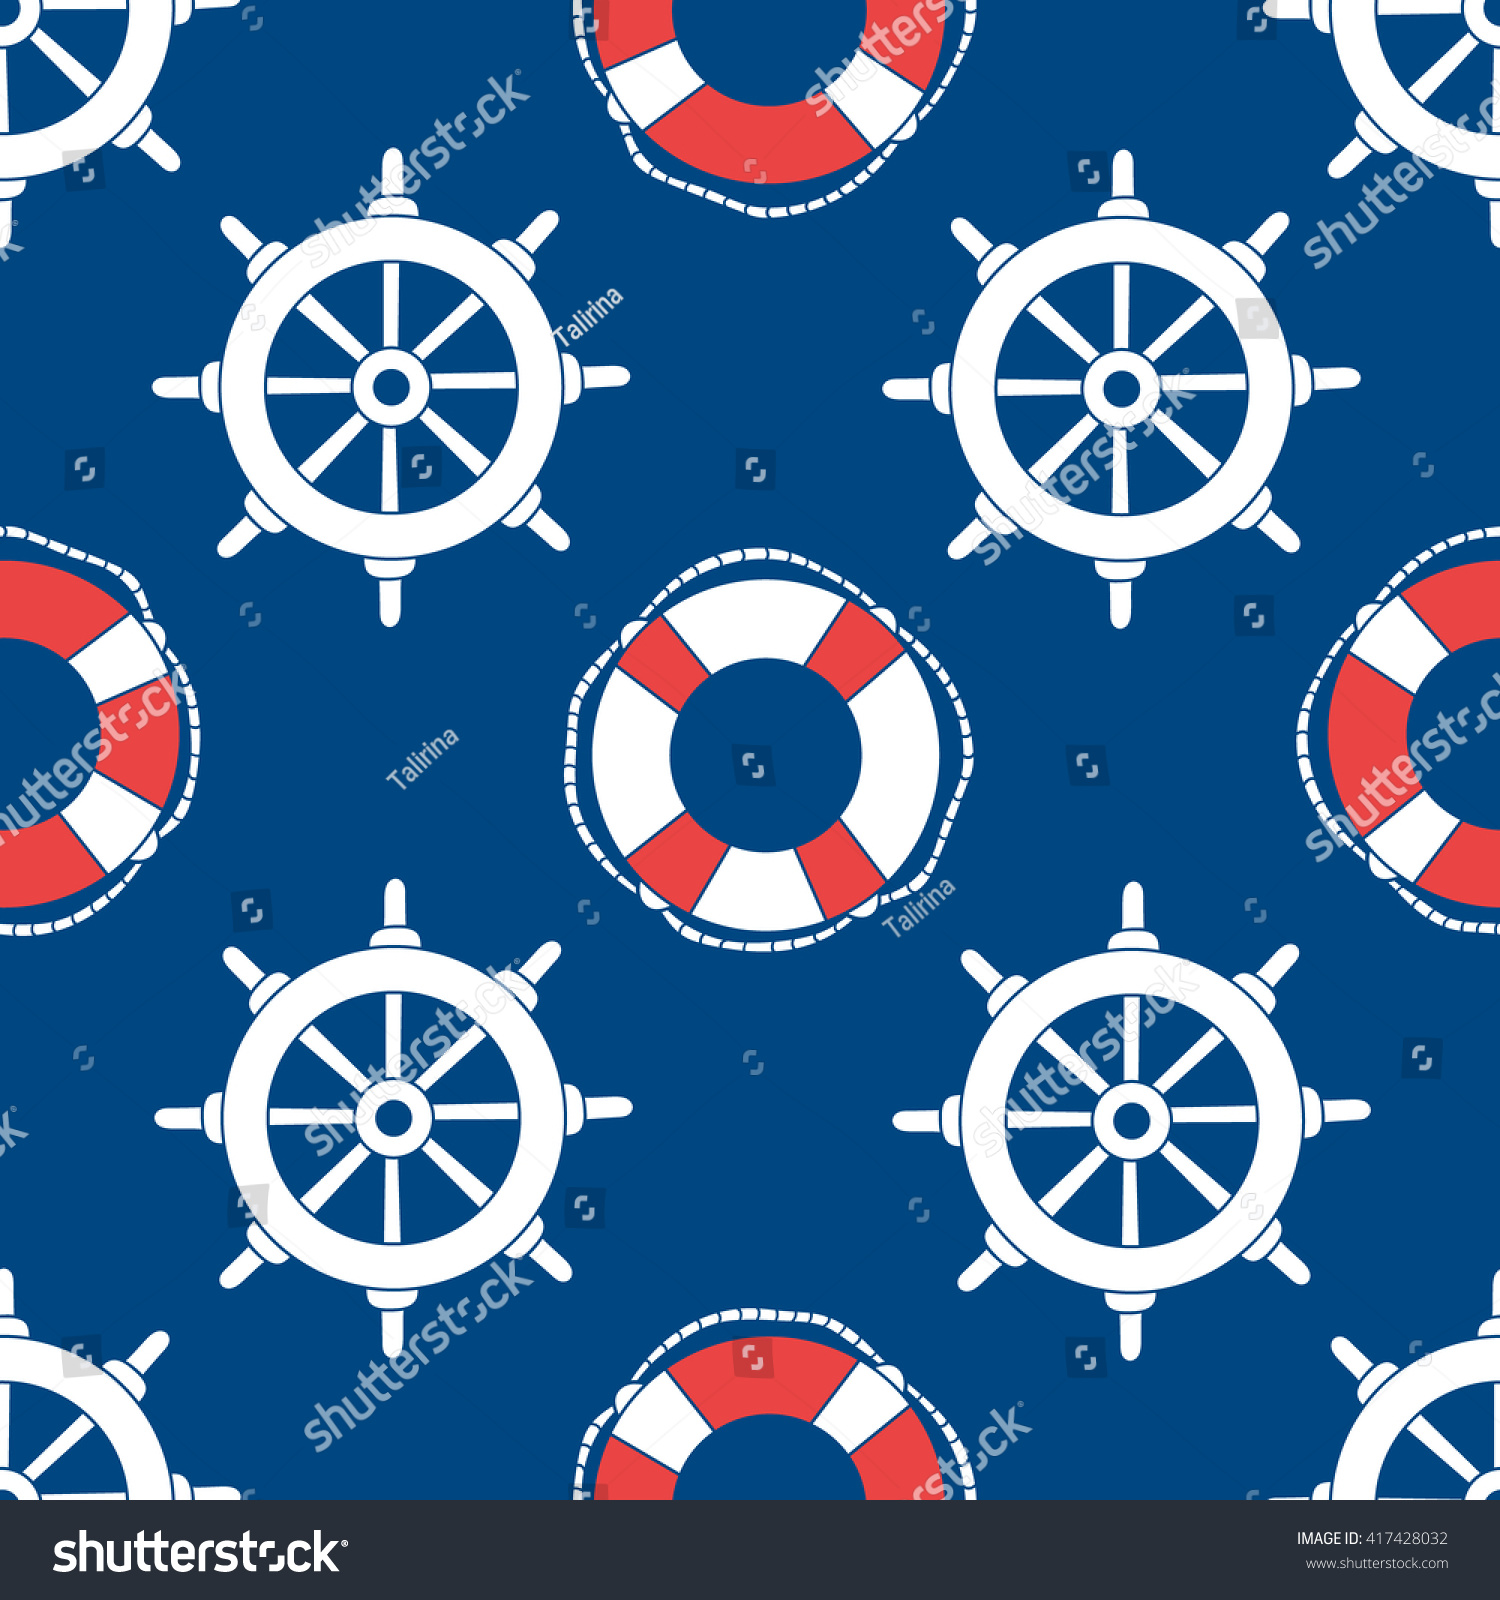 Offshore hand drawn seamless pattern seaman. Doodle marine background. Buoys and marine steering wheels